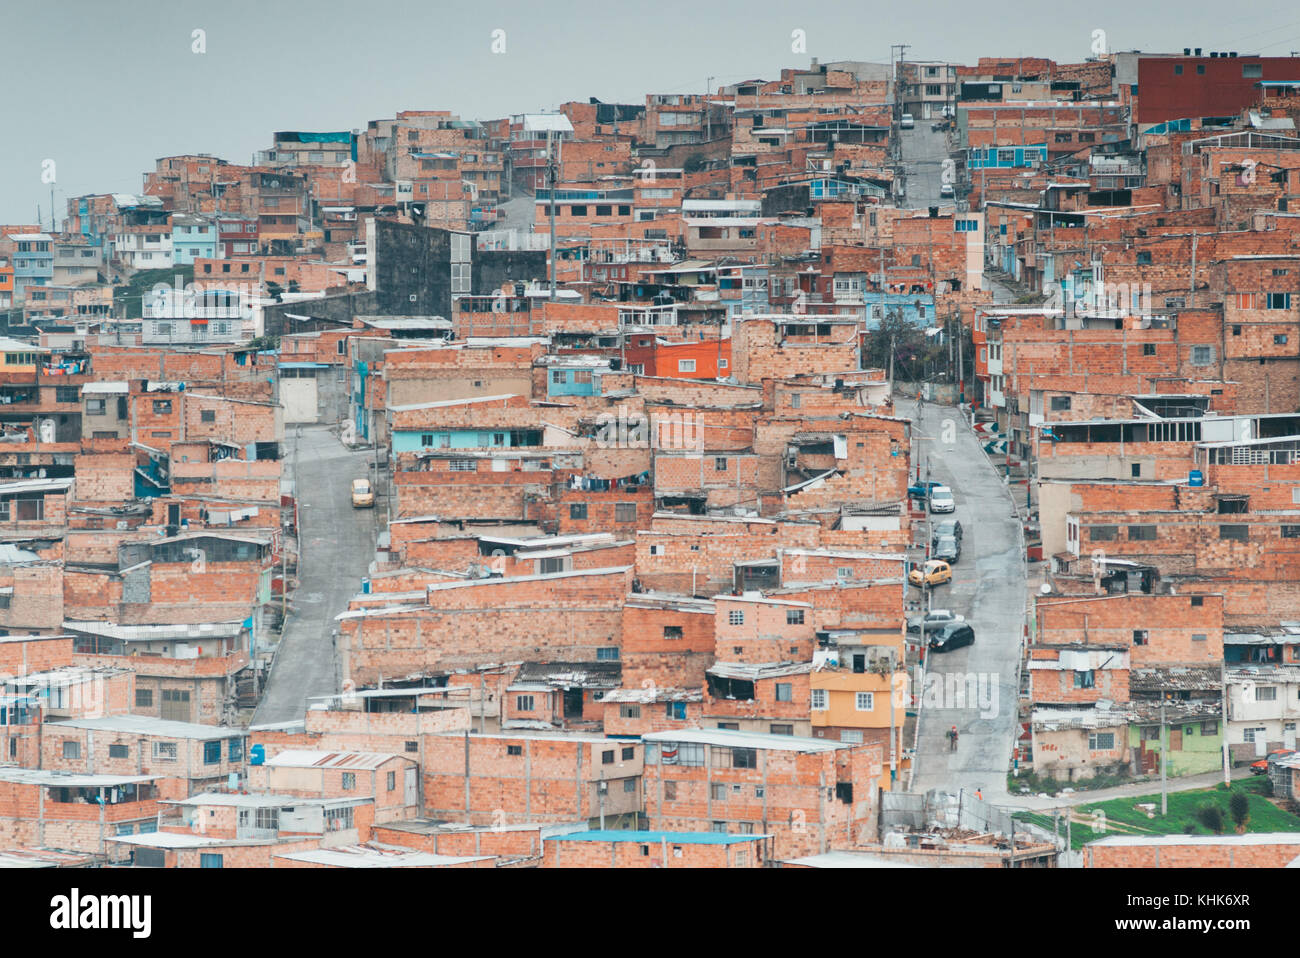 Looking out over the terracotta houses on the hillside suburb of Las Colinas, a neighbourhood in Bogotá, Colombia - Stock Image